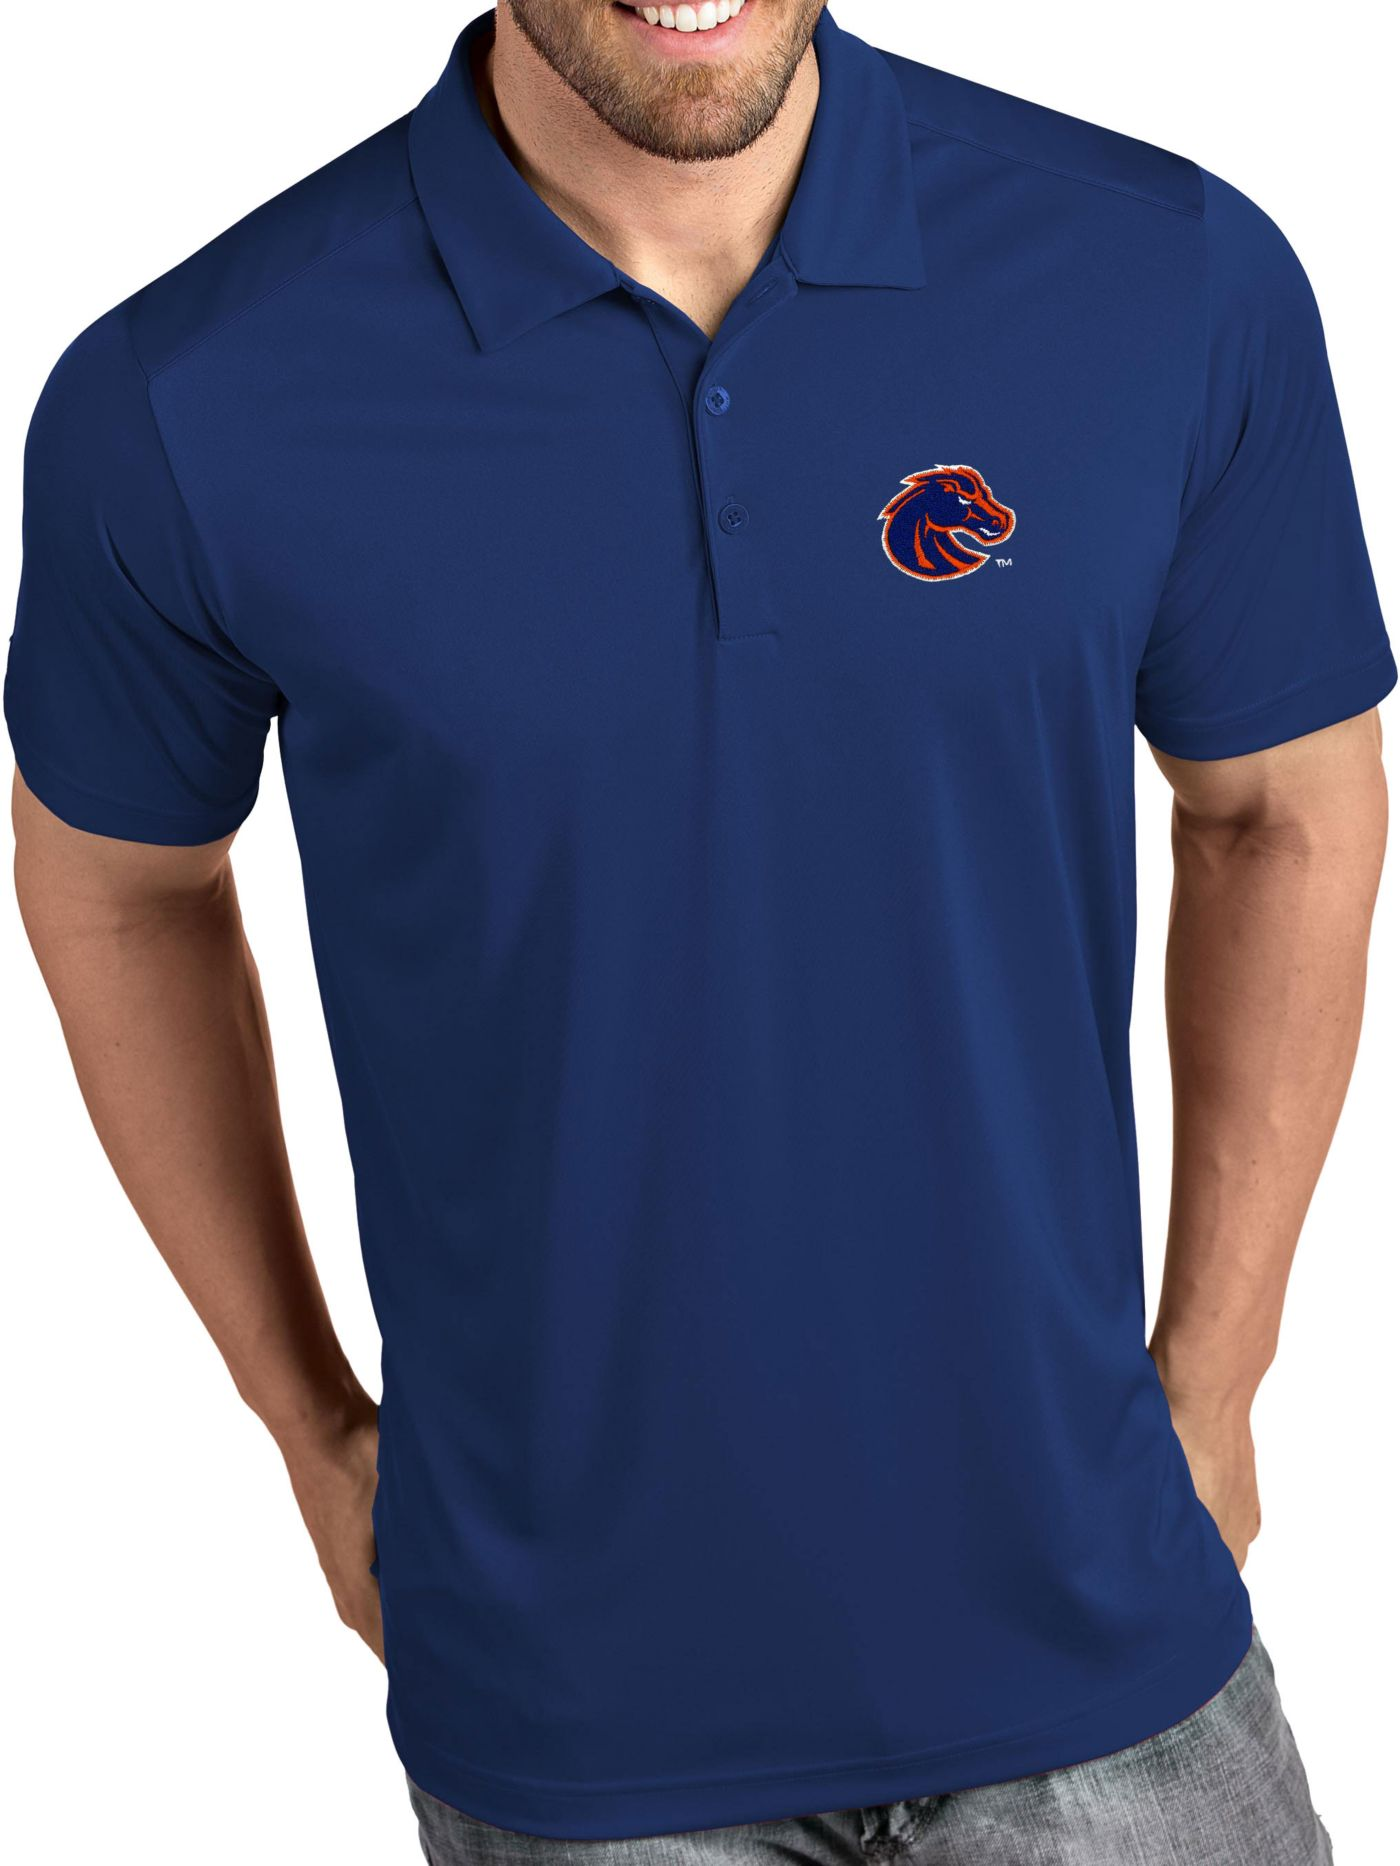 Antigua Men's Boise State Broncos Blue Tribute Performance Polo